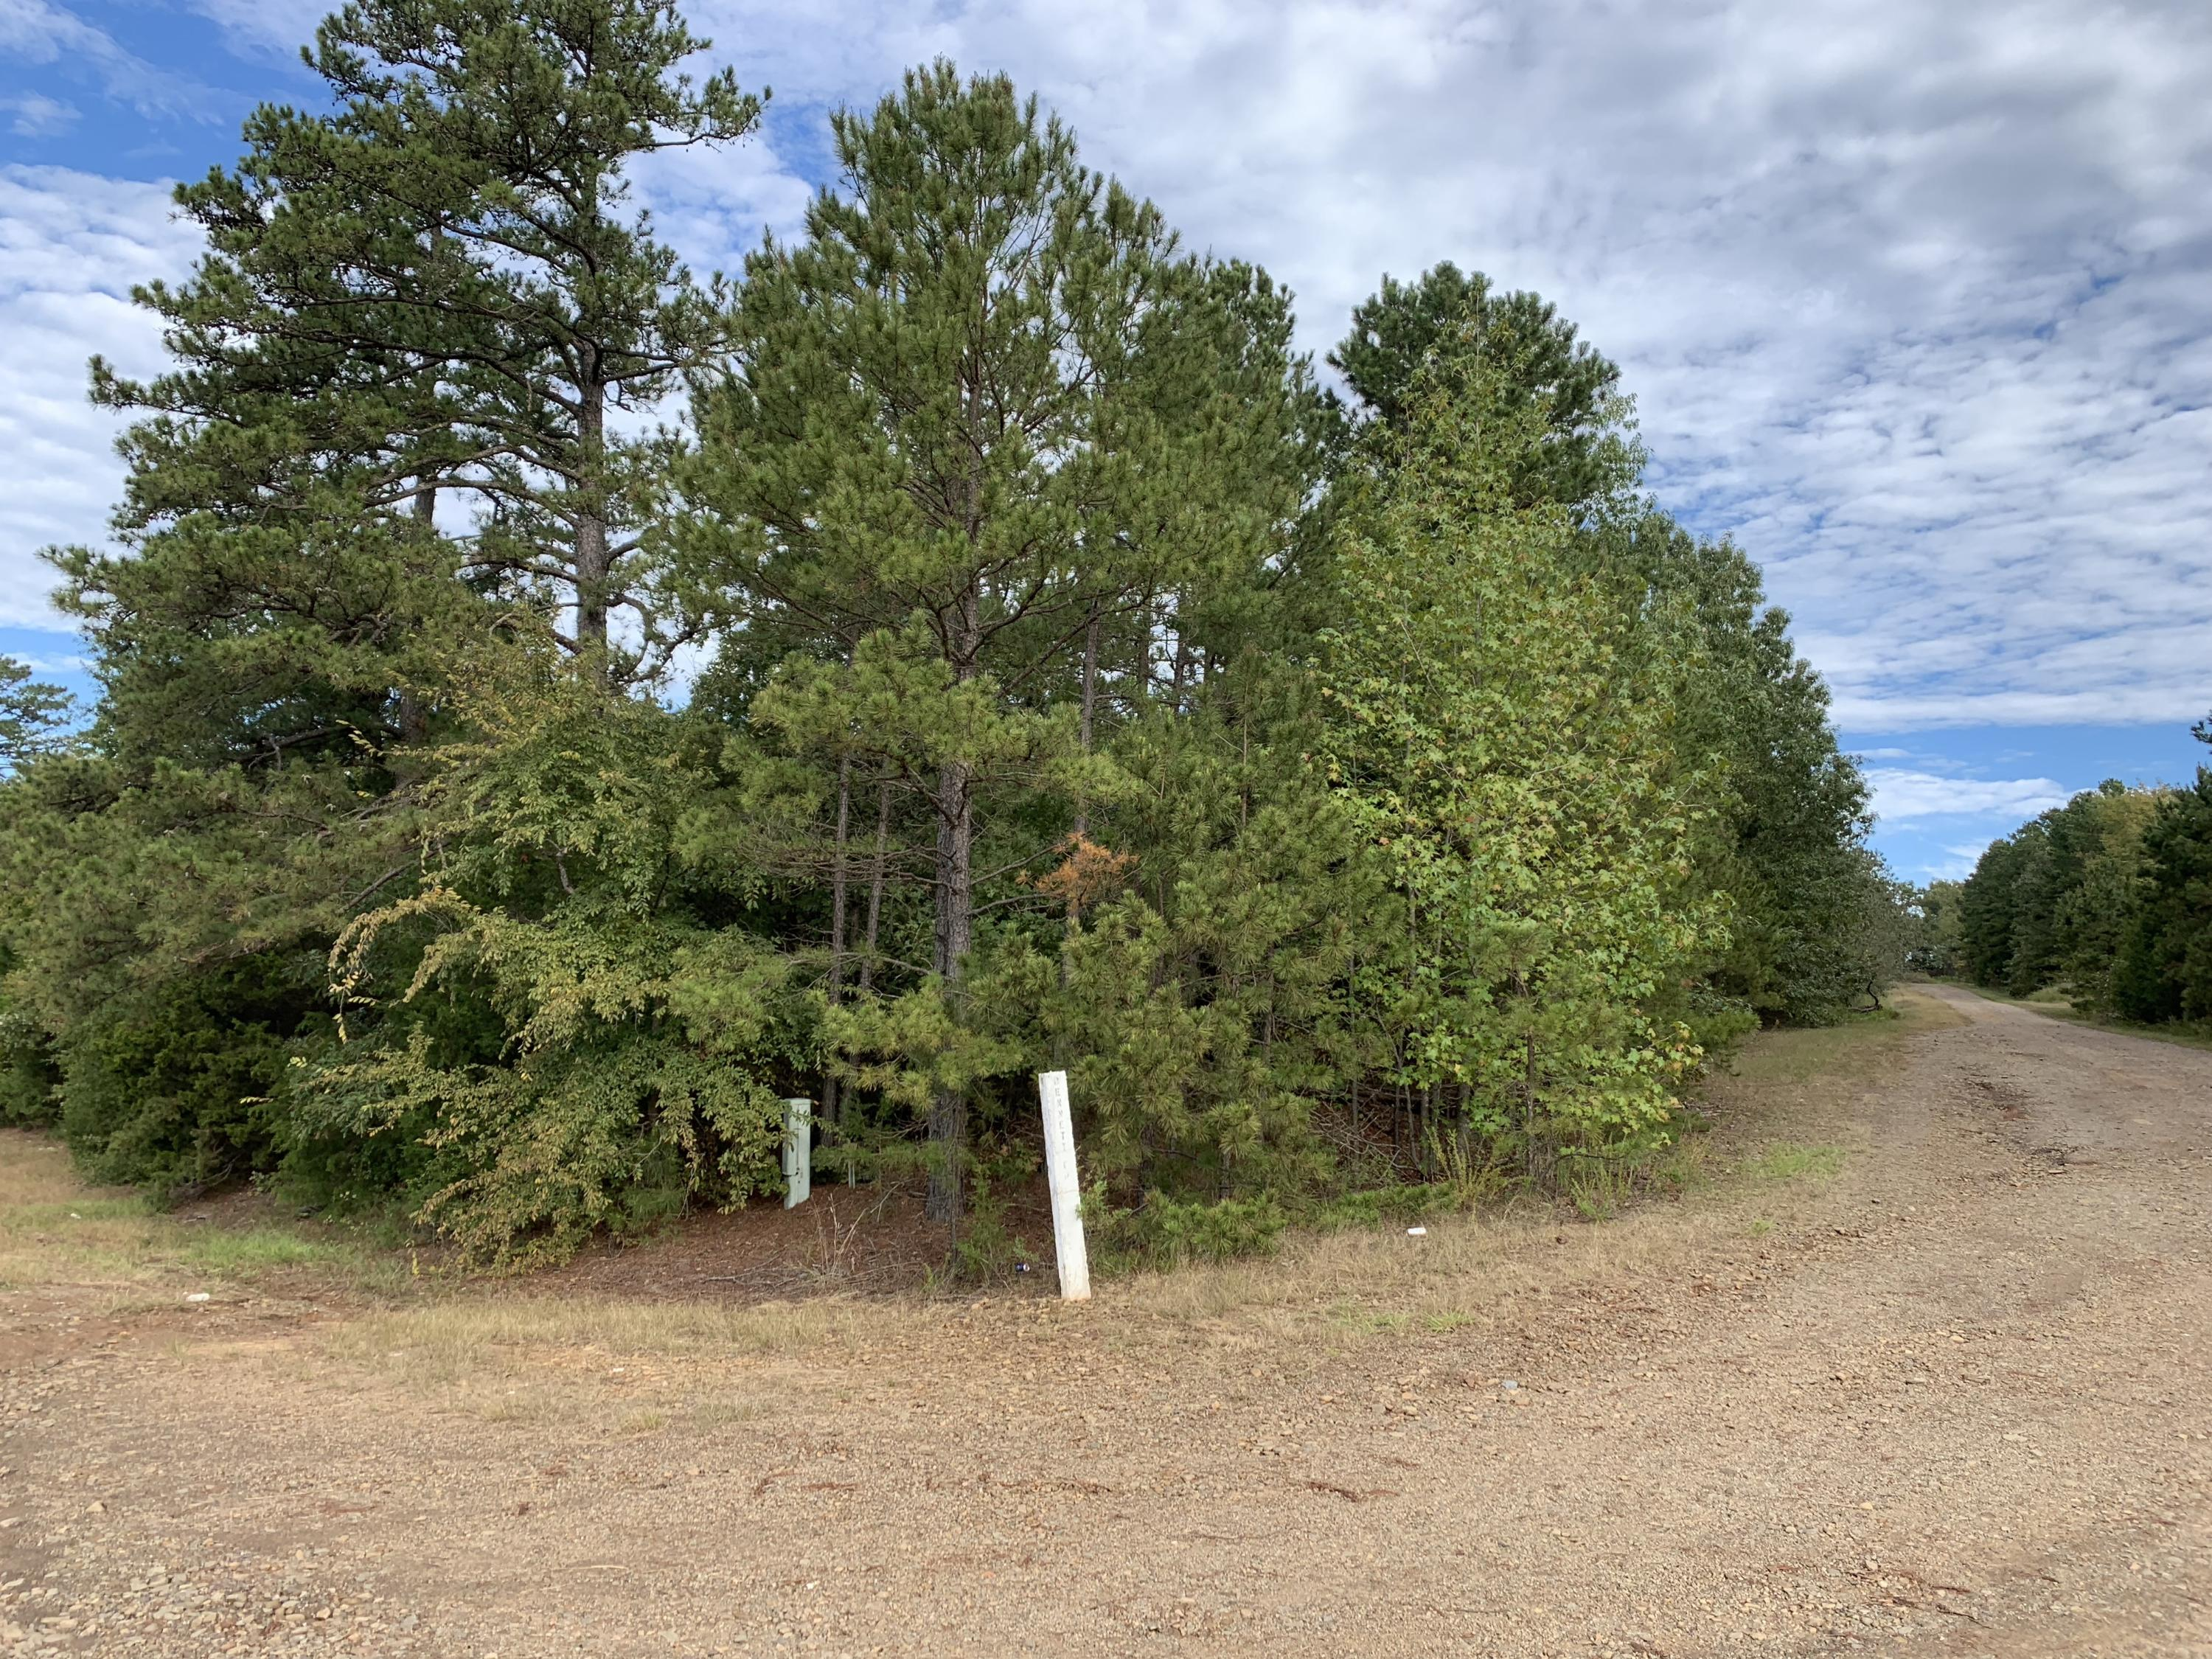 Large photo 1 of land for sale at  Bennett Orchard Estates , London, AR, listed by Coldwell Banker Premier Realty